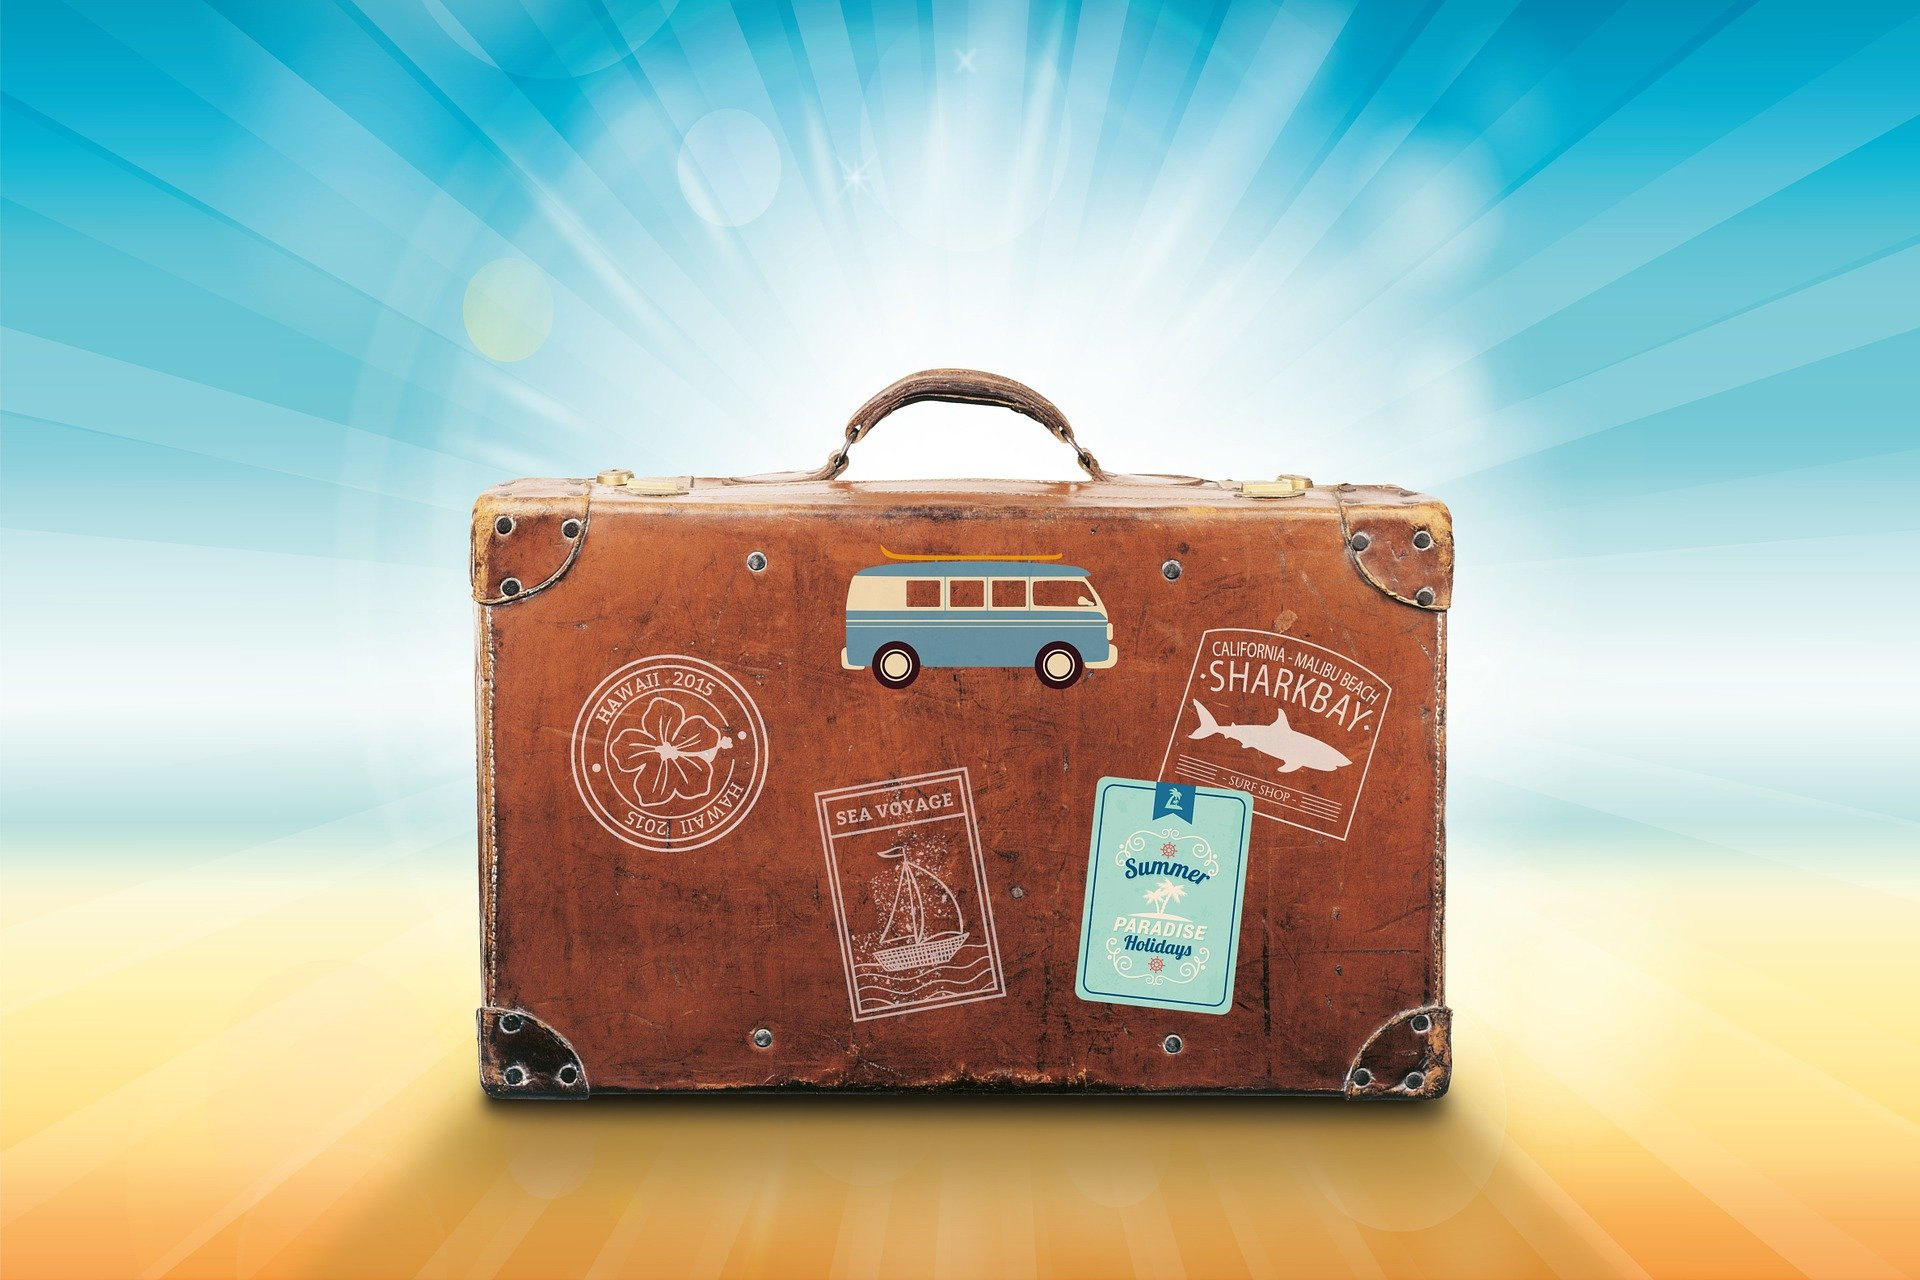 Suitcase pic for blog about medication safety tips for summer